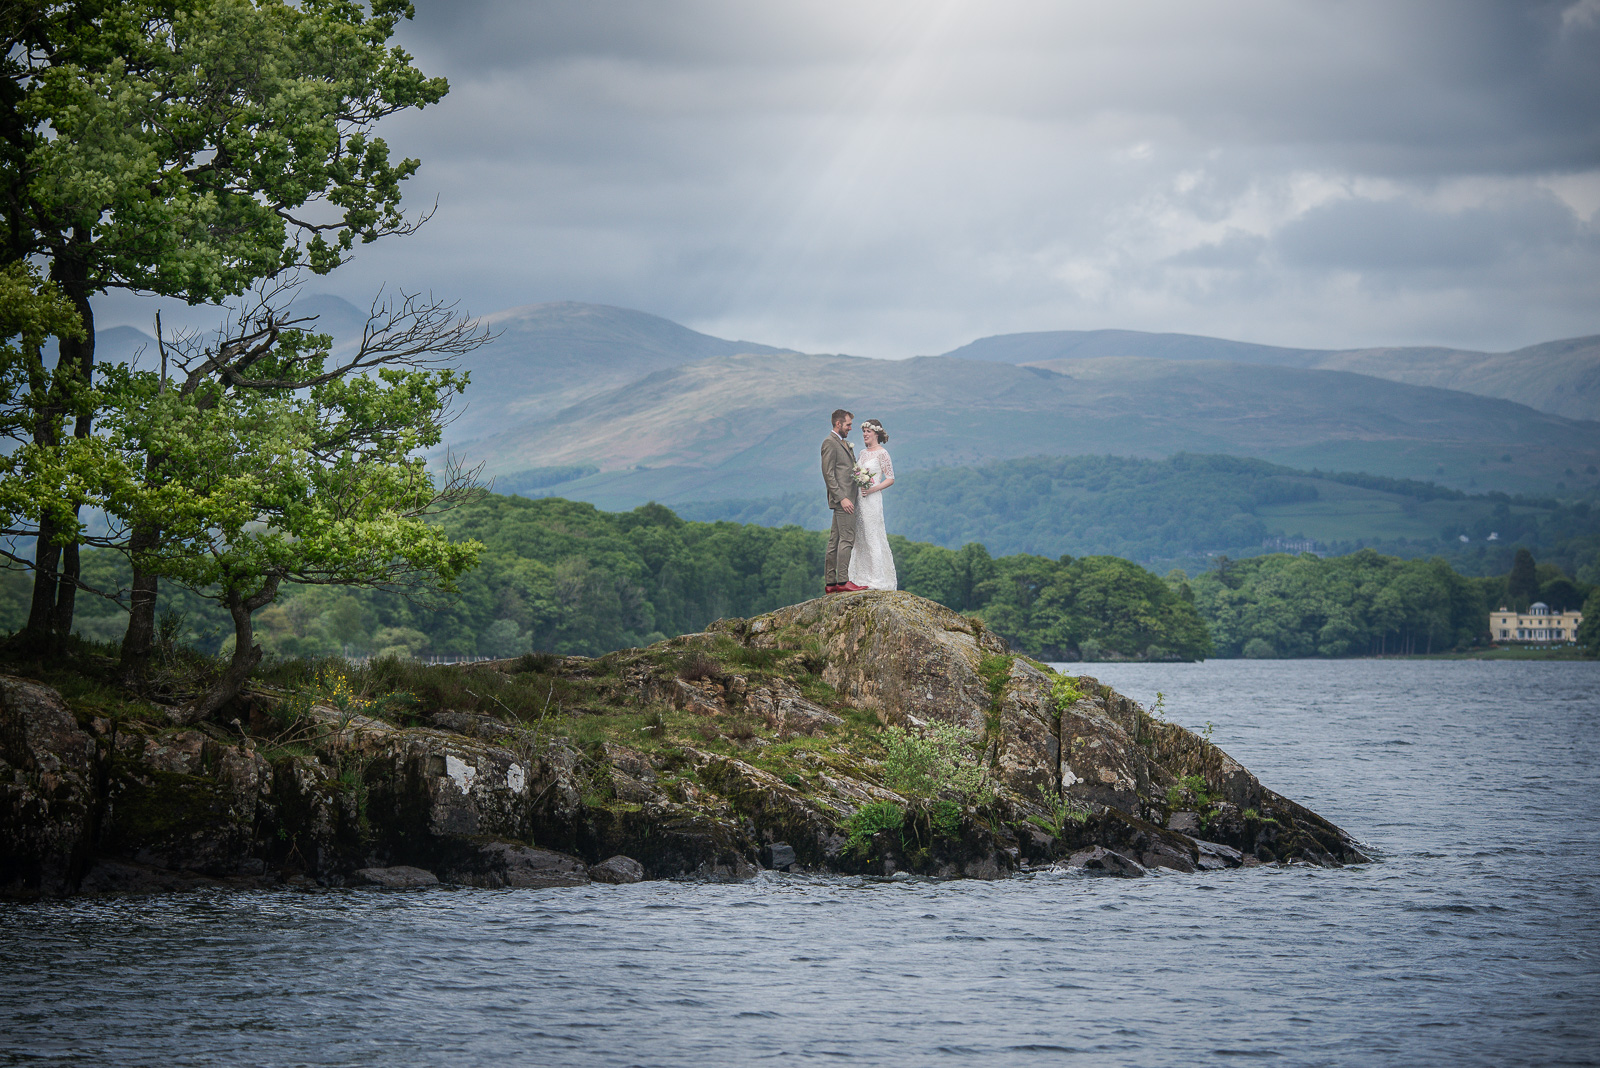 Wedding Photography by Mick Kenyon